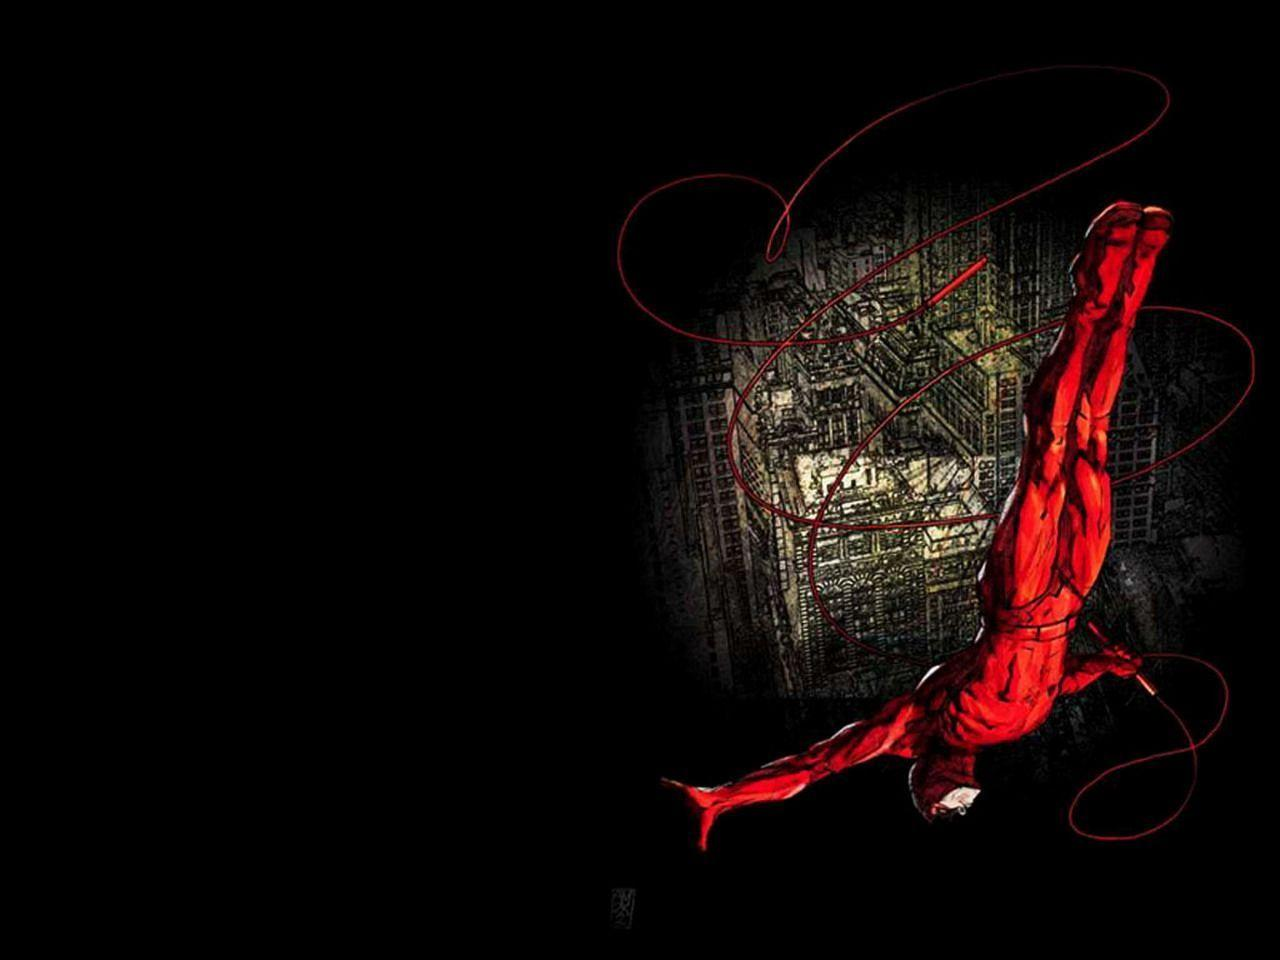 Daredevil Wallpapers Full Hd Wallpapers 1600x1200PX ~ Daredevil